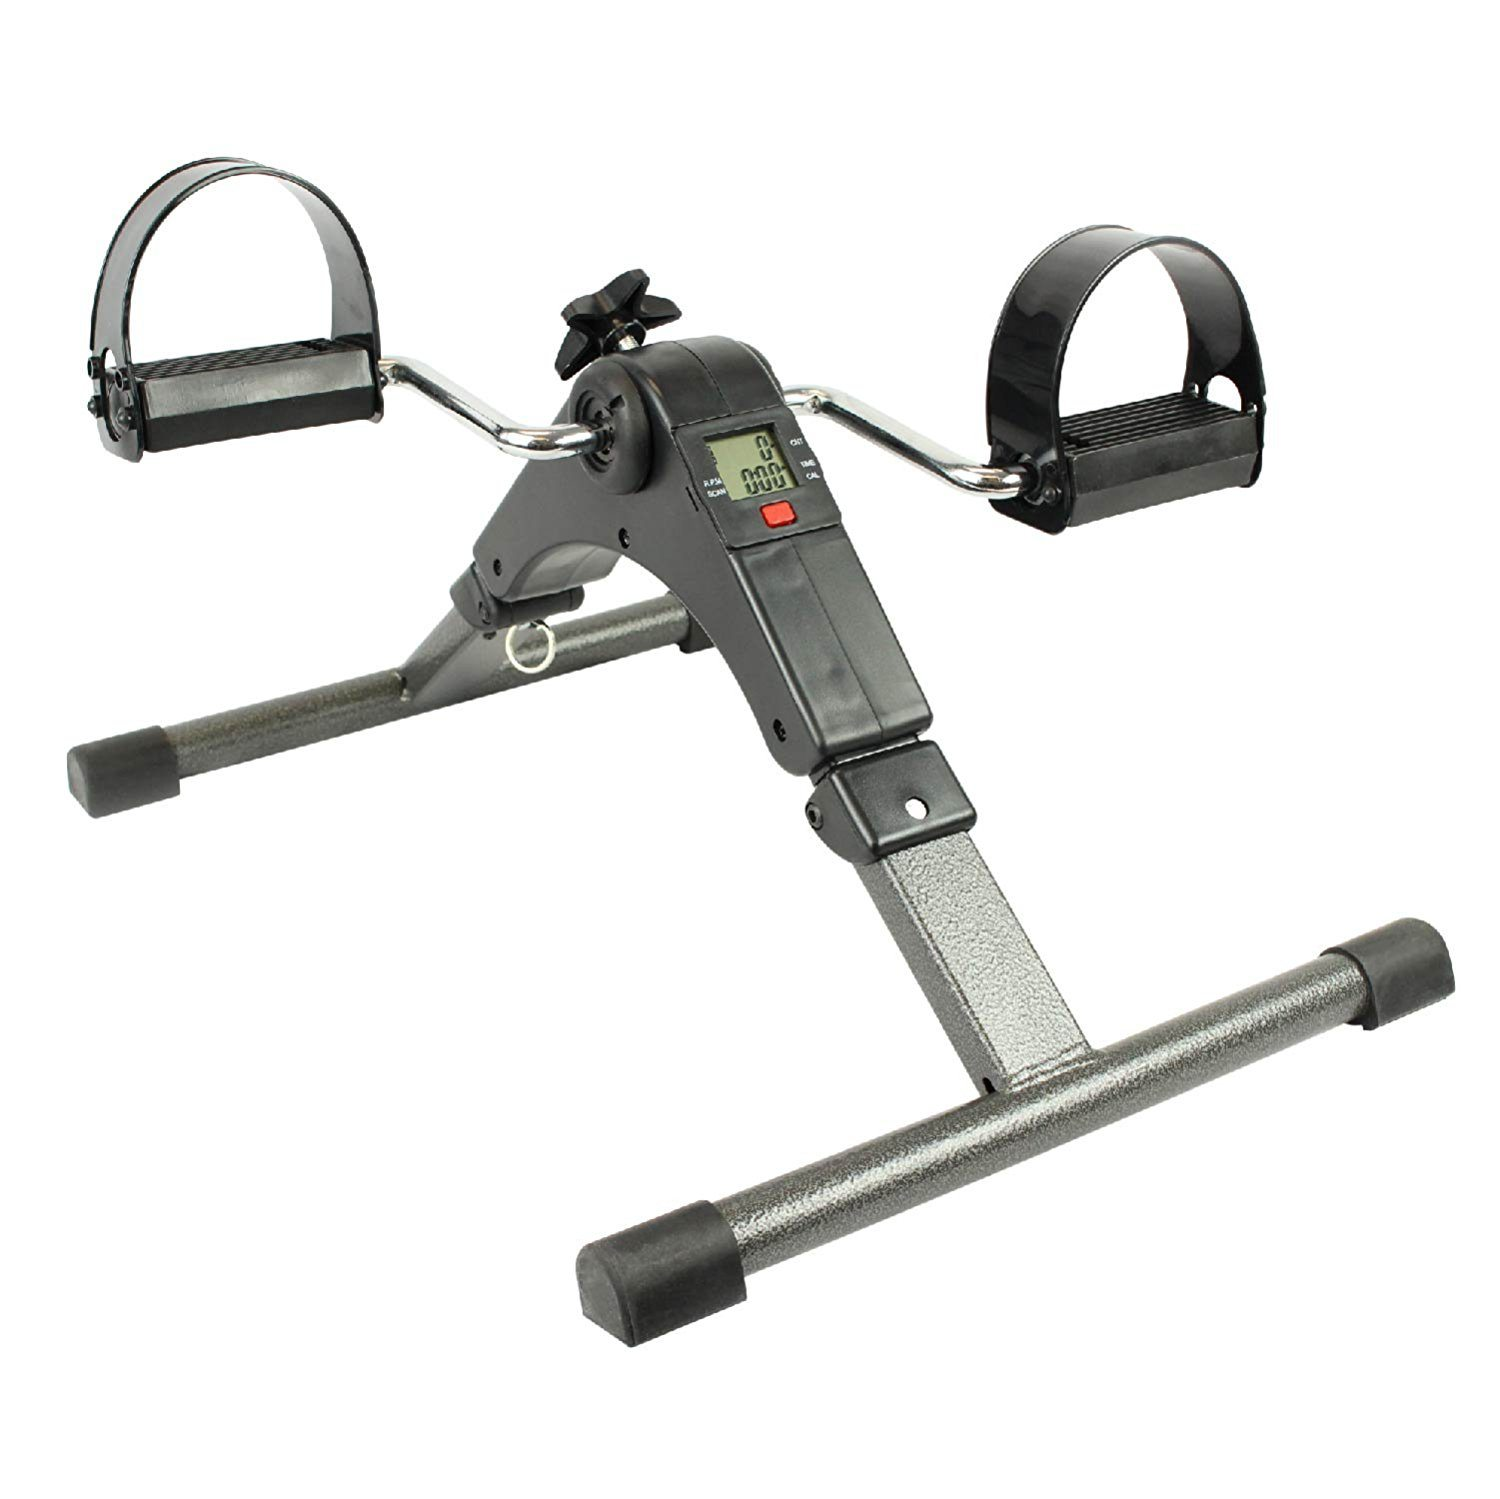 Small Space Home Fitness Equipment For Your Apartment | Low-Impact Portable Peddle Exerciser